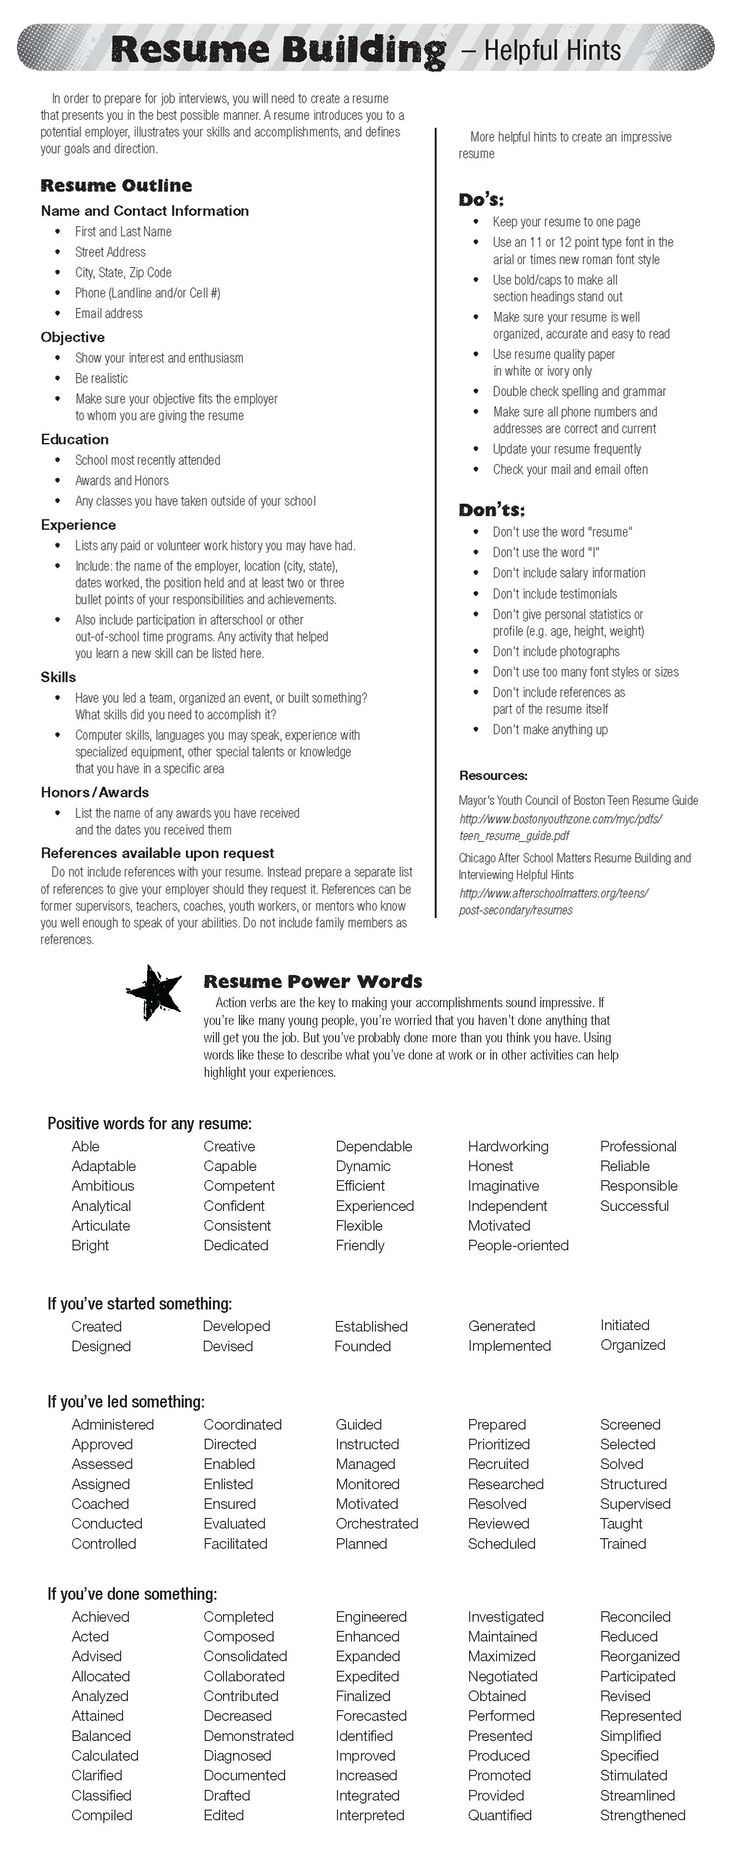 Opposenewapstandardsus  Outstanding  Ideas About Resume On Pinterest  Cv Format Resume Cv And  With Goodlooking  Ideas About Resume On Pinterest  Cv Format Resume Cv And Resume Templates With Enchanting Park Ranger Resume Also Where Can I Buy Resume Paper In Addition Example Of Objectives For Resume And Define Resume For A Job As Well As Onet Online Resume Additionally Sap Sd Resume From Pinterestcom With Opposenewapstandardsus  Goodlooking  Ideas About Resume On Pinterest  Cv Format Resume Cv And  With Enchanting  Ideas About Resume On Pinterest  Cv Format Resume Cv And Resume Templates And Outstanding Park Ranger Resume Also Where Can I Buy Resume Paper In Addition Example Of Objectives For Resume From Pinterestcom